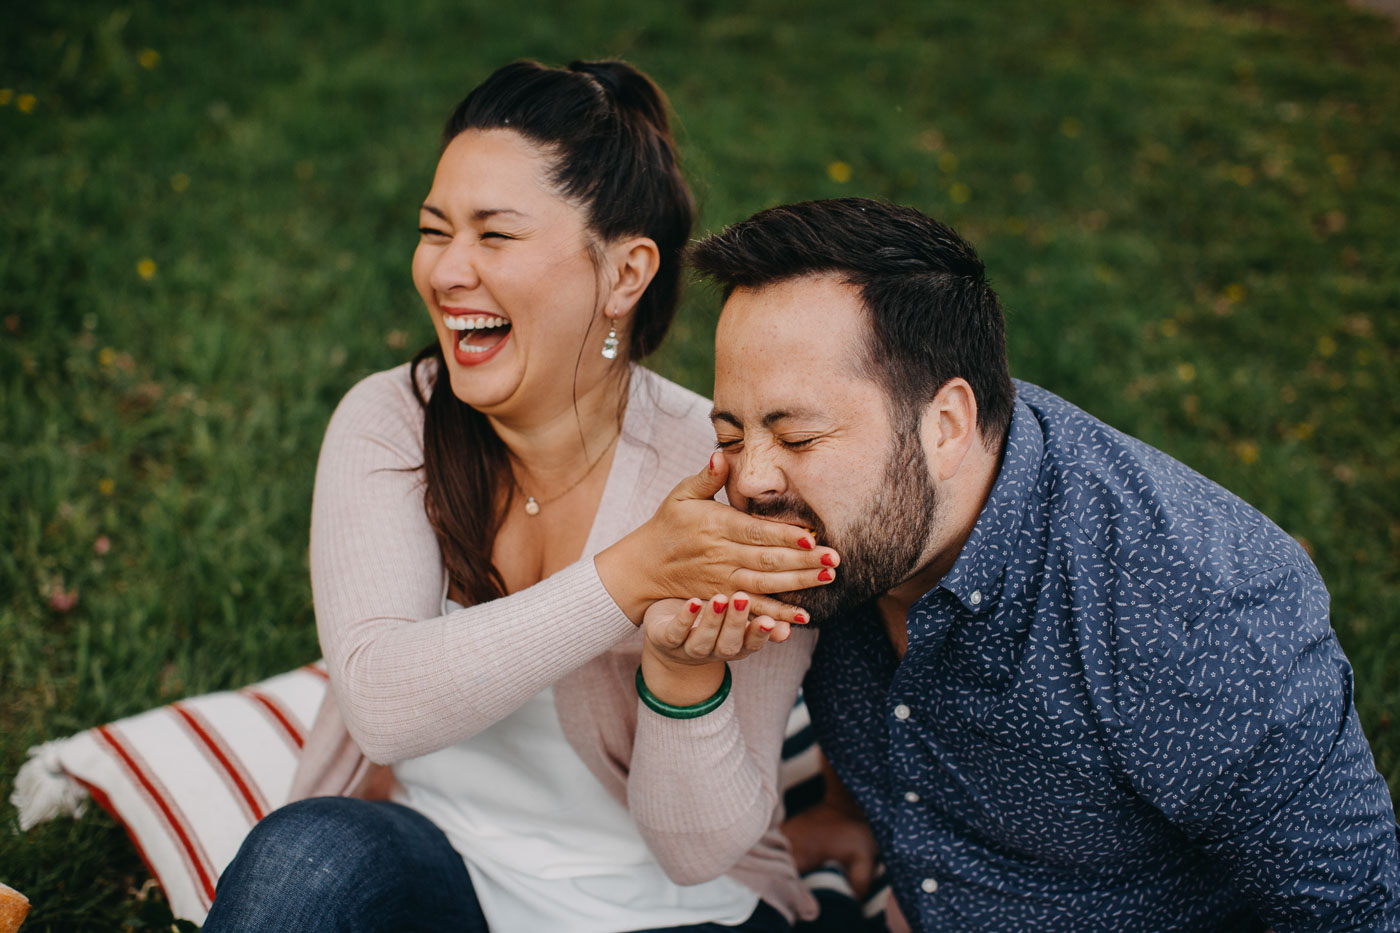 a couple seated on a blue striped picnic blanket on the grass next to a lake with a summer picnic charcuterie board for 2. she is feeding him a bite of charcuterie & they are both laughing.